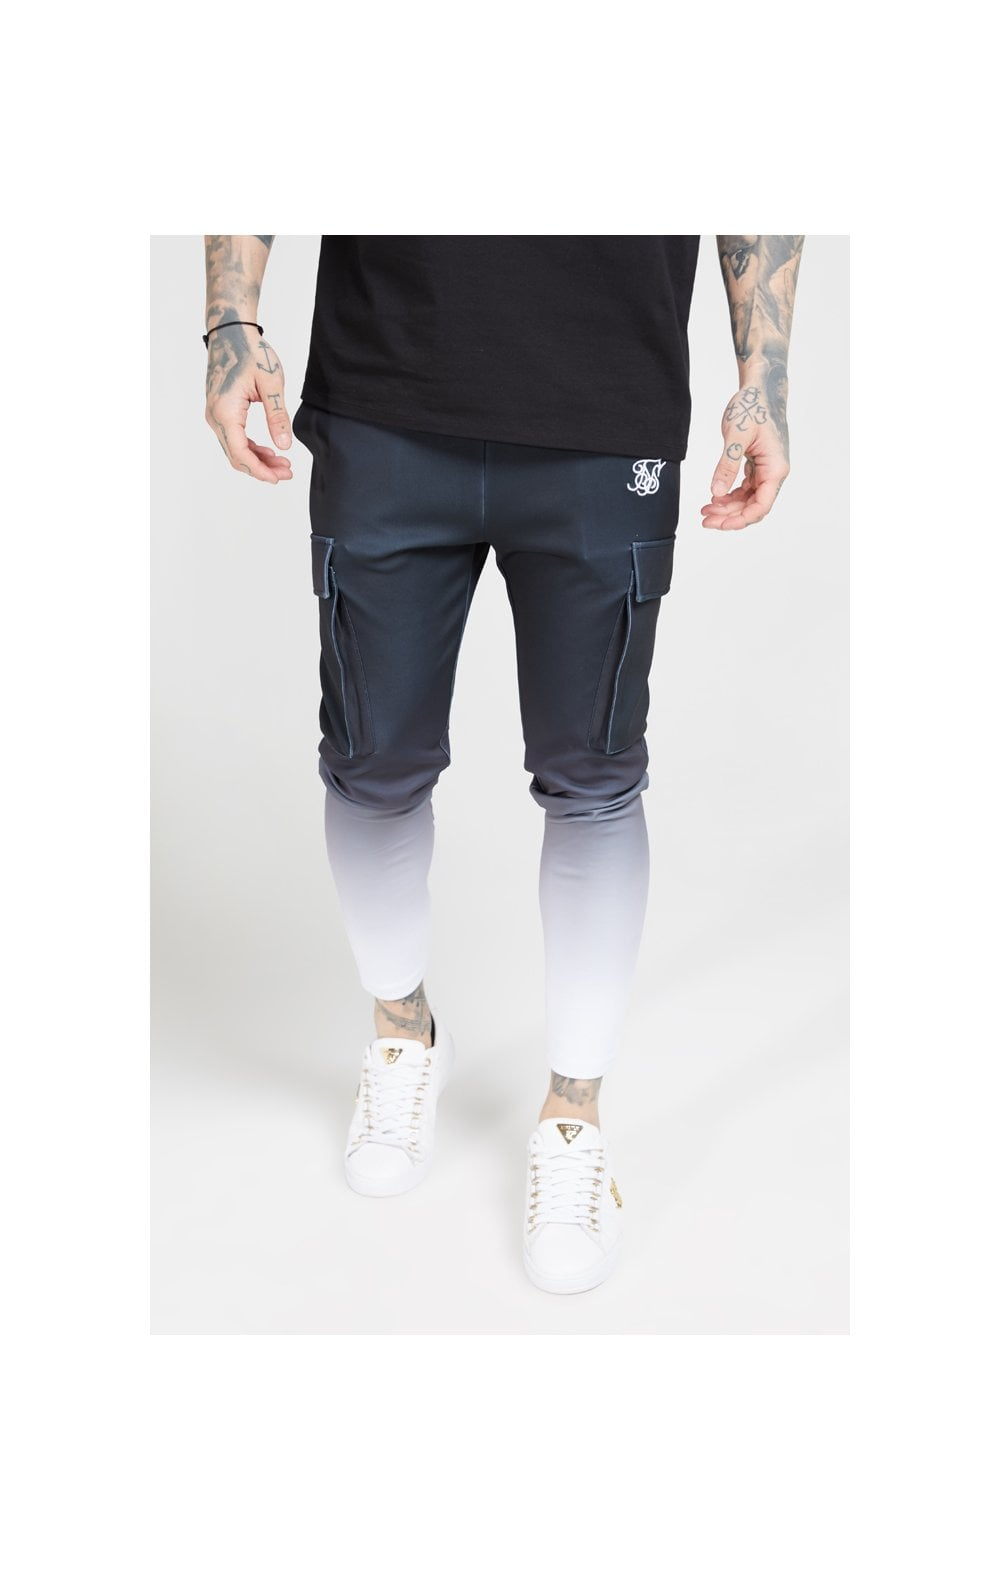 Load image into Gallery viewer, SikSilk Poly Athlete Cargo Pants - Black & White (1)